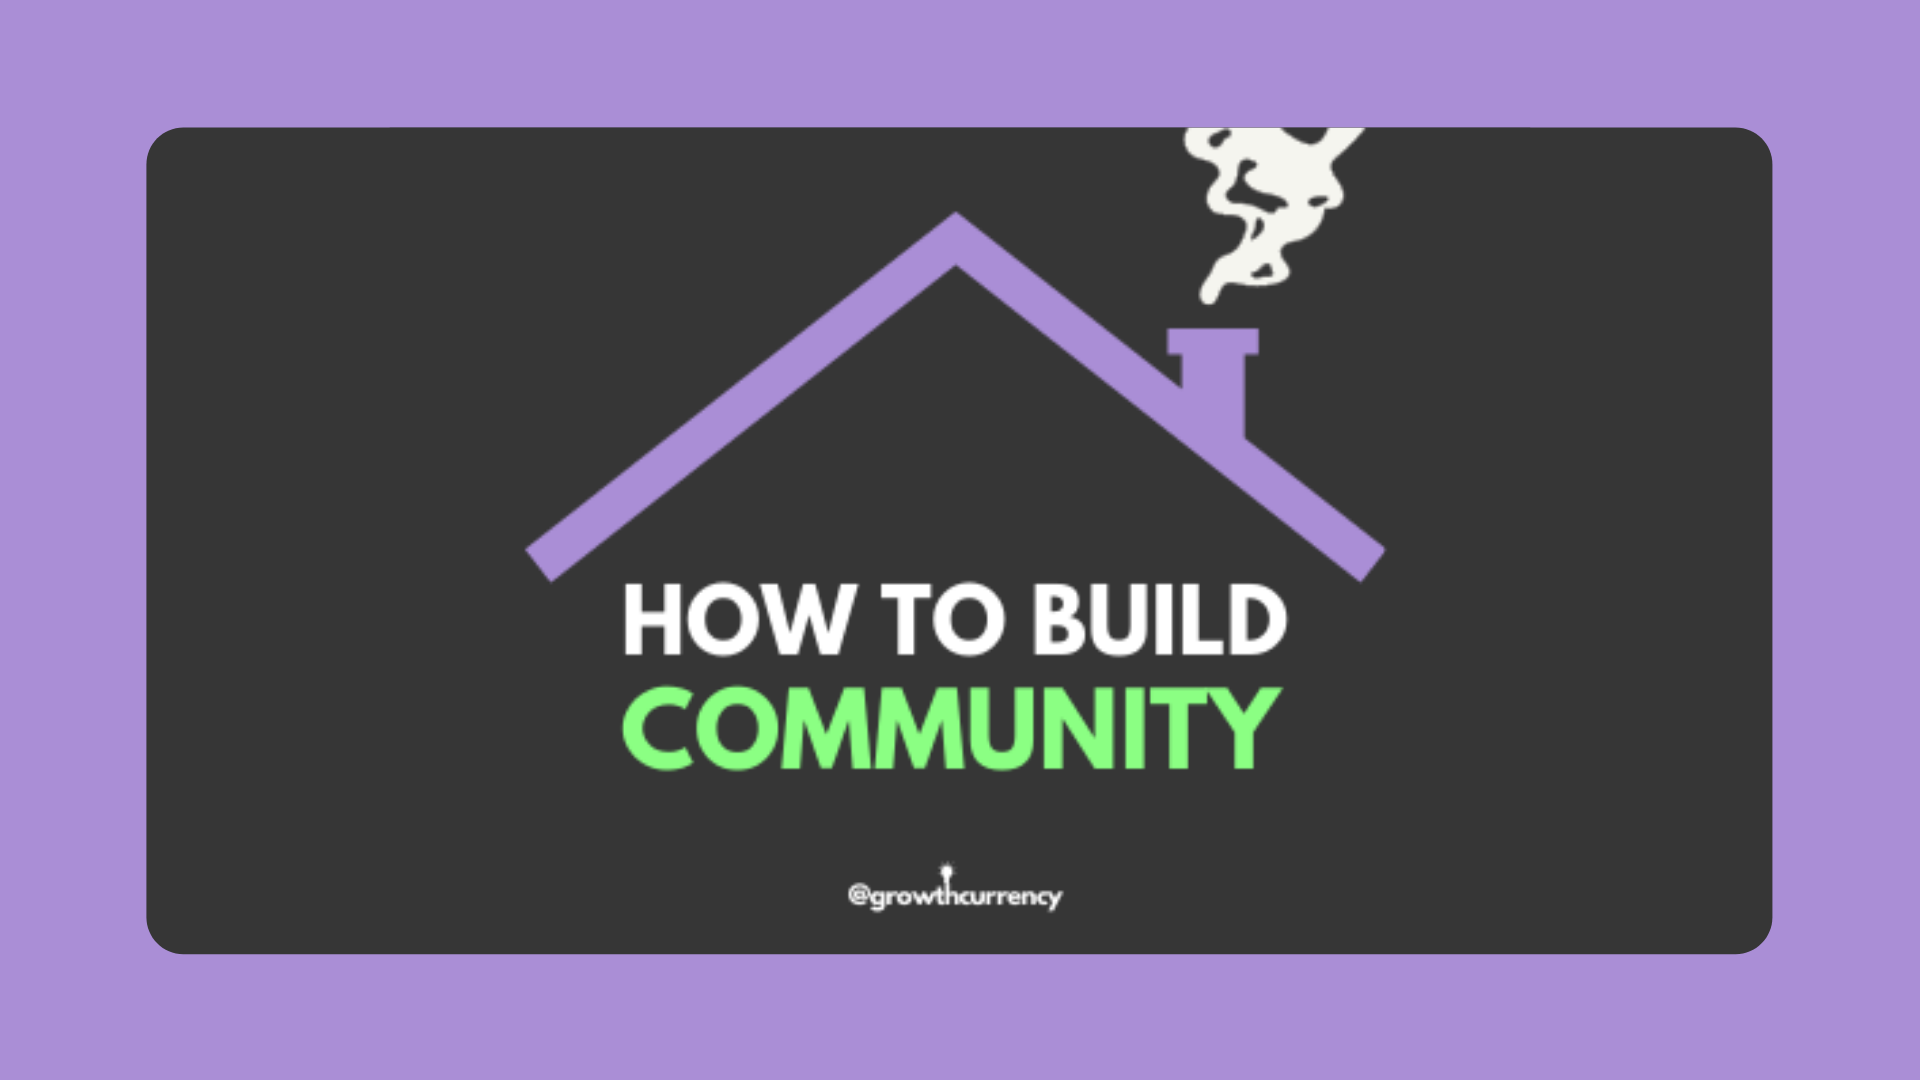 5 Lessons Learned on Building a Community—from a Member's Perspective